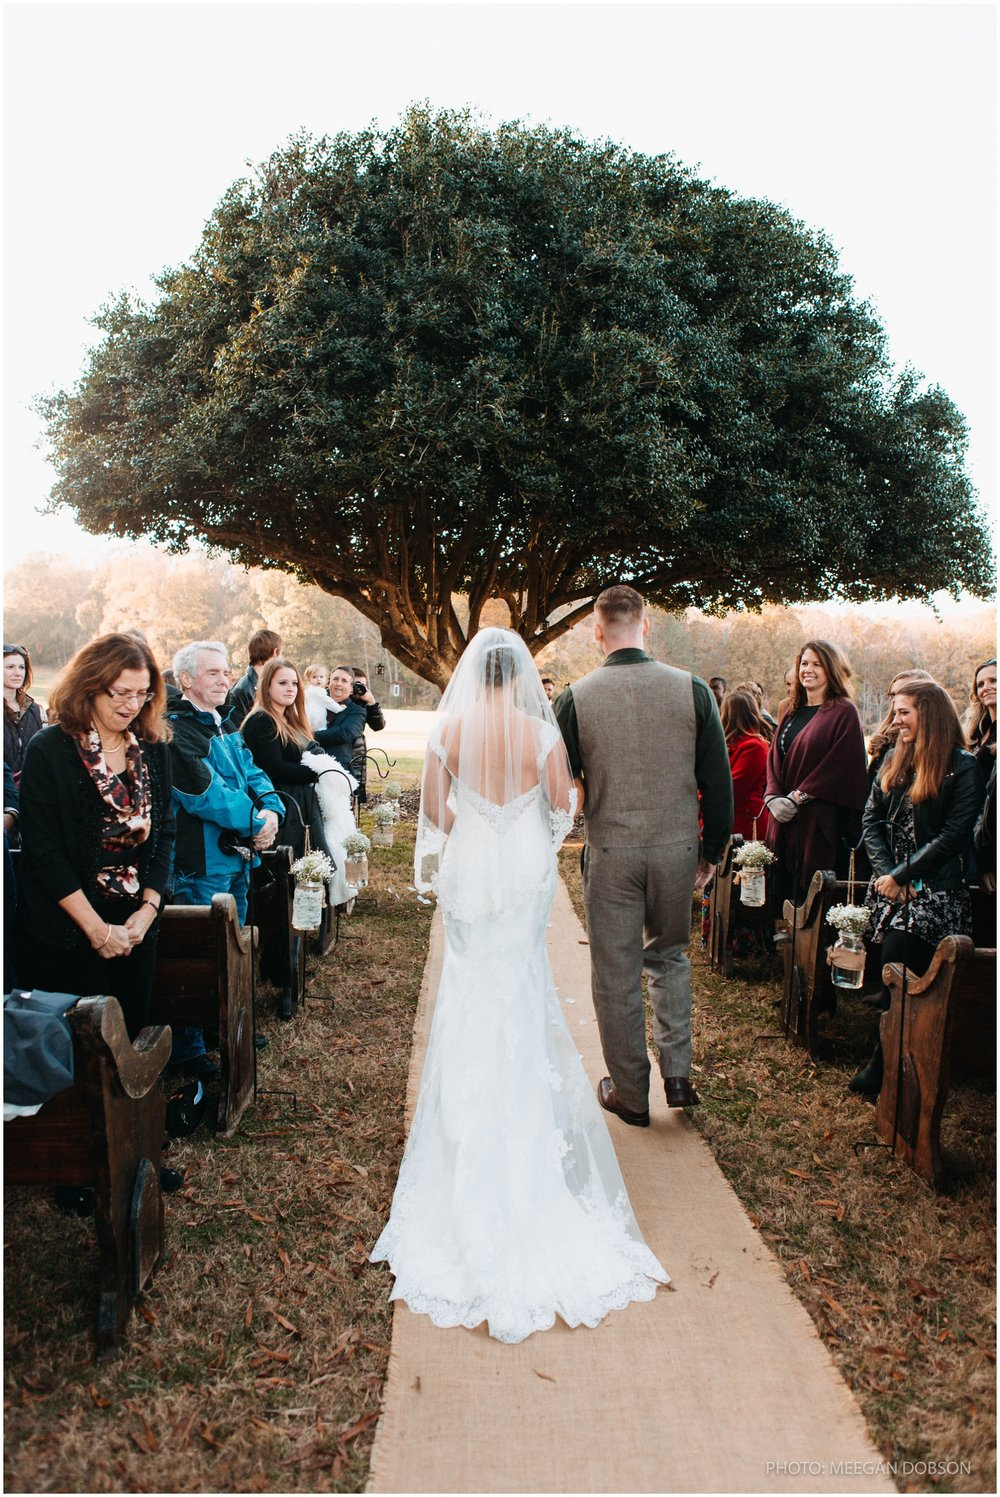 Jess+Dan_rustic_southern_farm_fall_wedding_charlotte_north carolina_taylor powers_0171.jpg